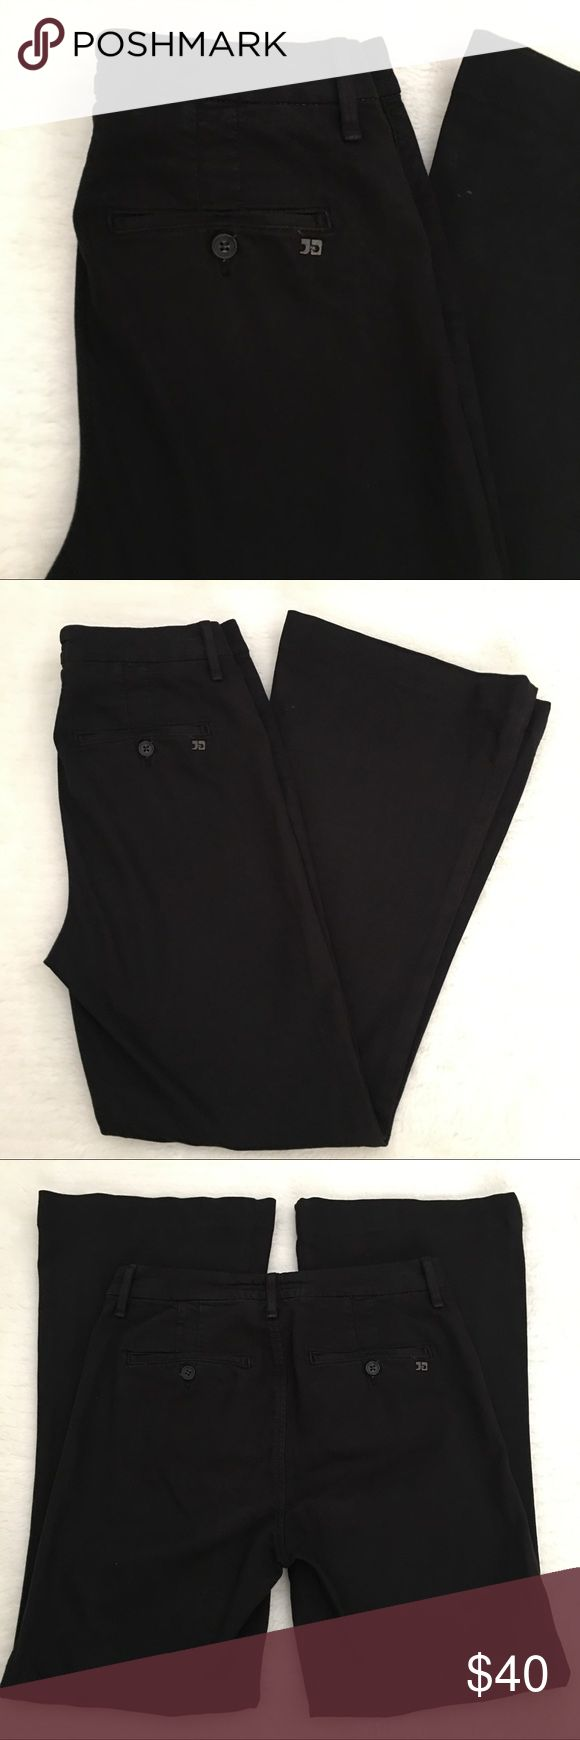 "Joe's Jeans Black Khaki Pants size 27x29"" Preowned authentic Joe's Jeans Black Khaki Pants size 27x29"". Rise is 10"" inches. Signs of normal wear. Please look at pictures for better reference. Thank you for looking and happy shopping! Joe's Jeans Pants Boot Cut & Flare"